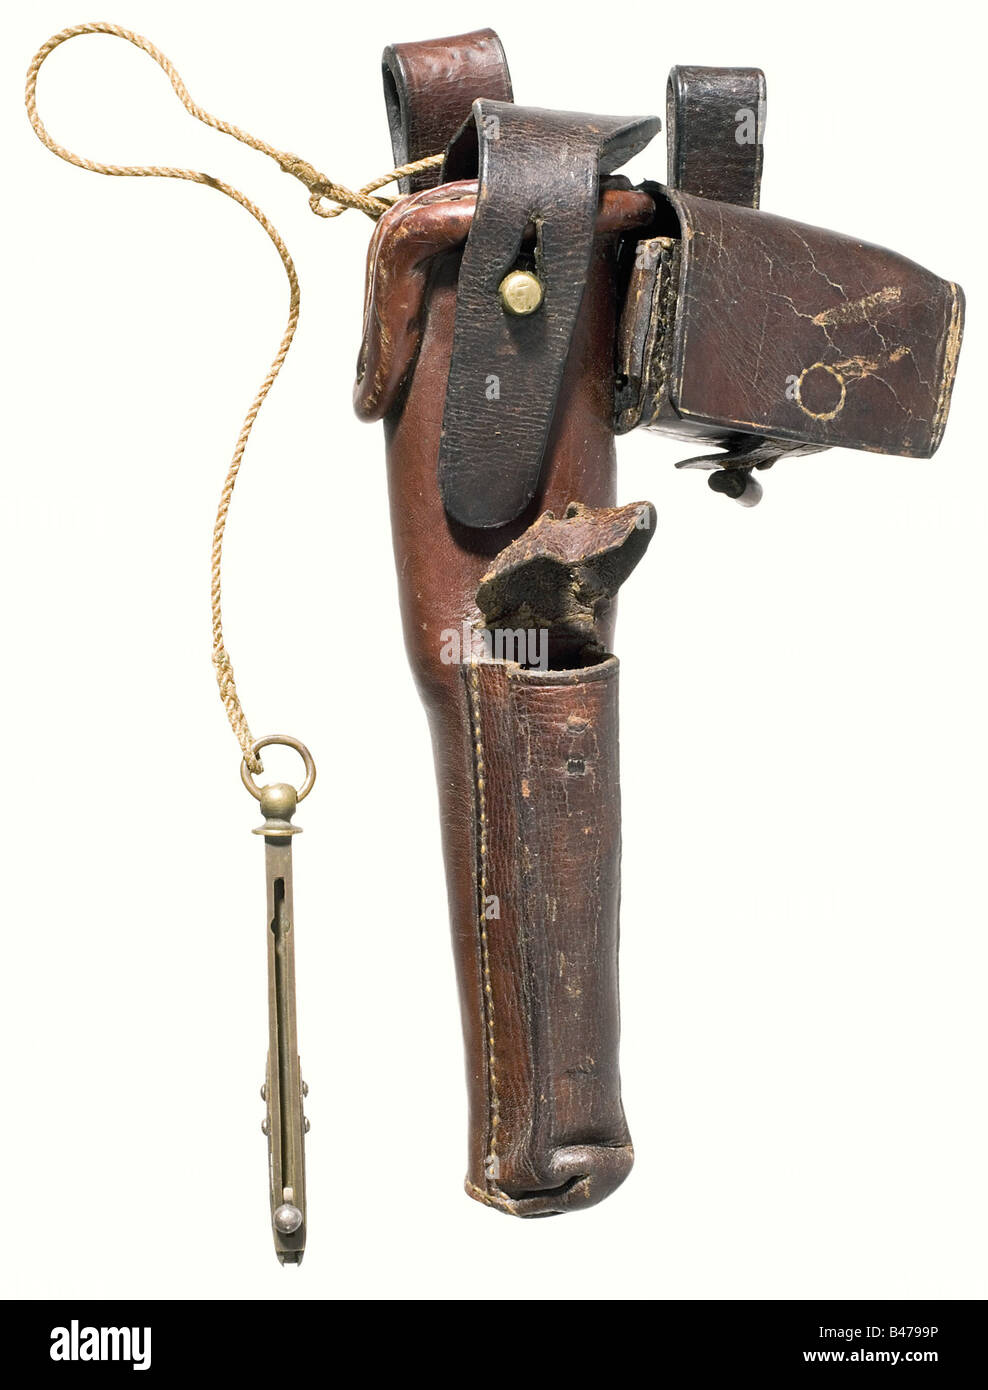 A holster for revolver a/m (Colt), 1857., Brown leather with reinforced edges and closing strap. Sewn on extra pouch - Stock Image